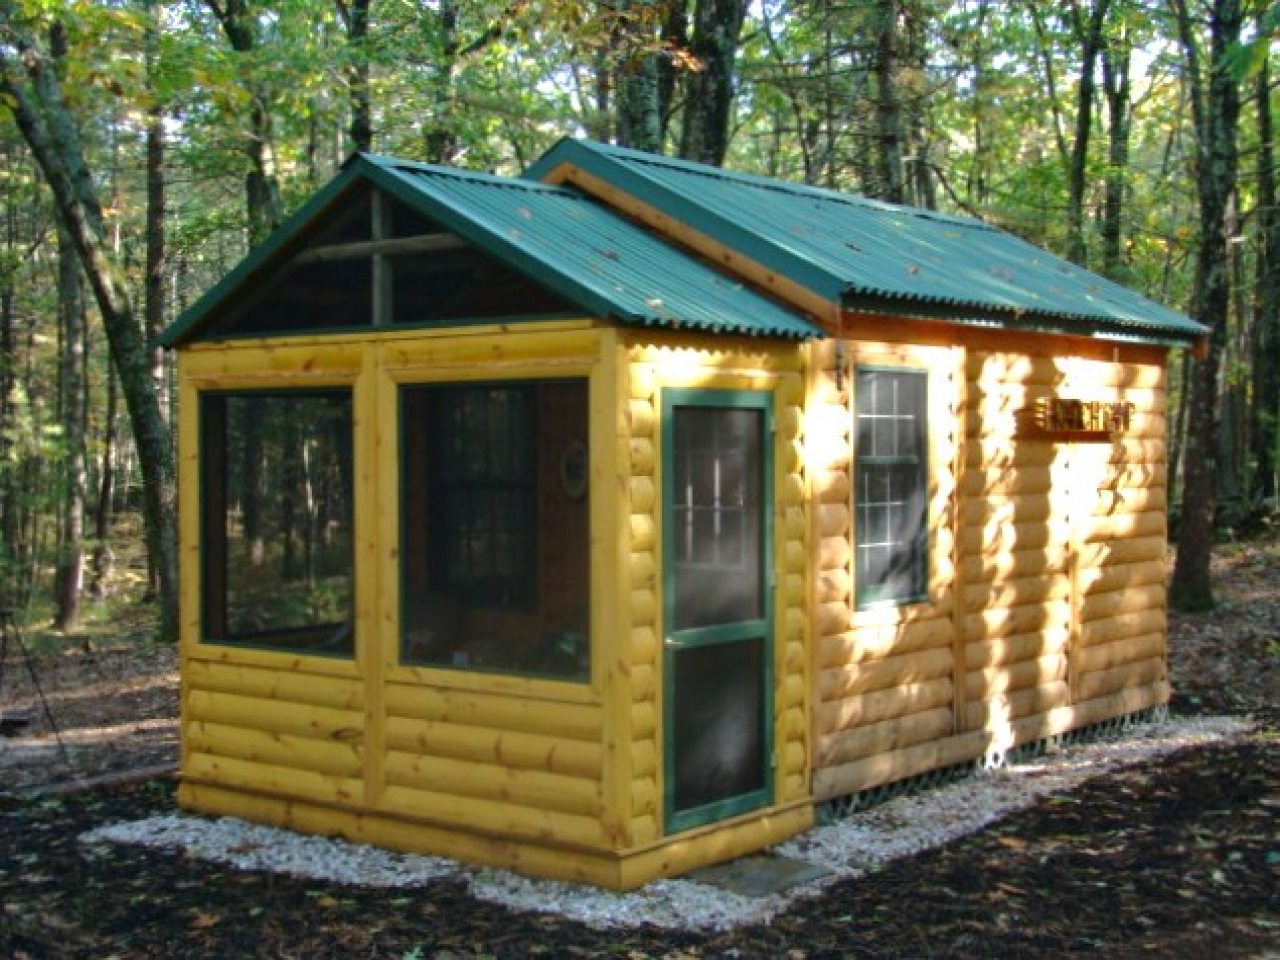 Small camping cabin kits tiny cabin kits camp cabin kits for Small cabins and cottages